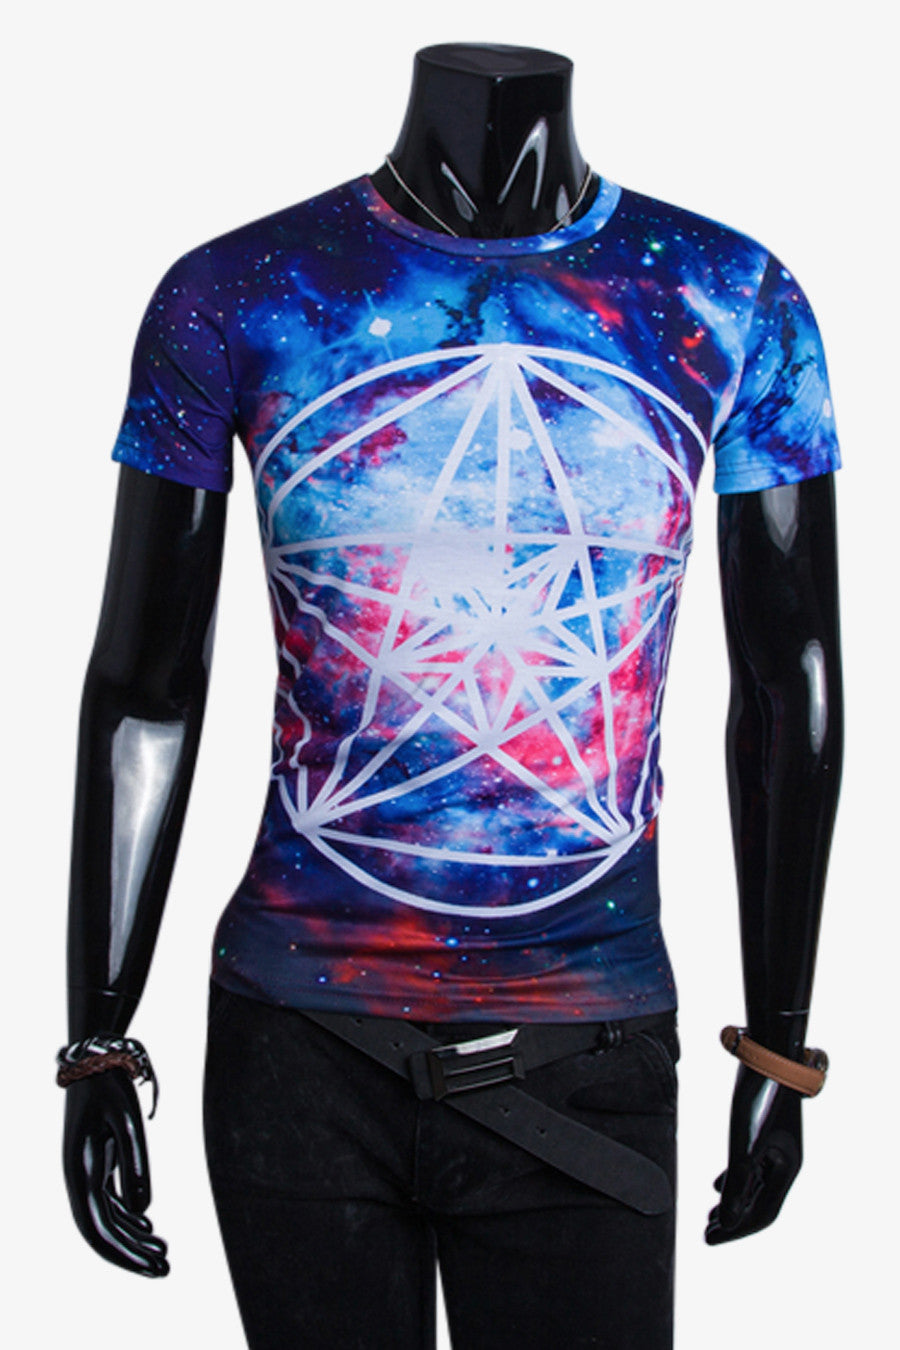 3D Space Psychedelic T-shirt